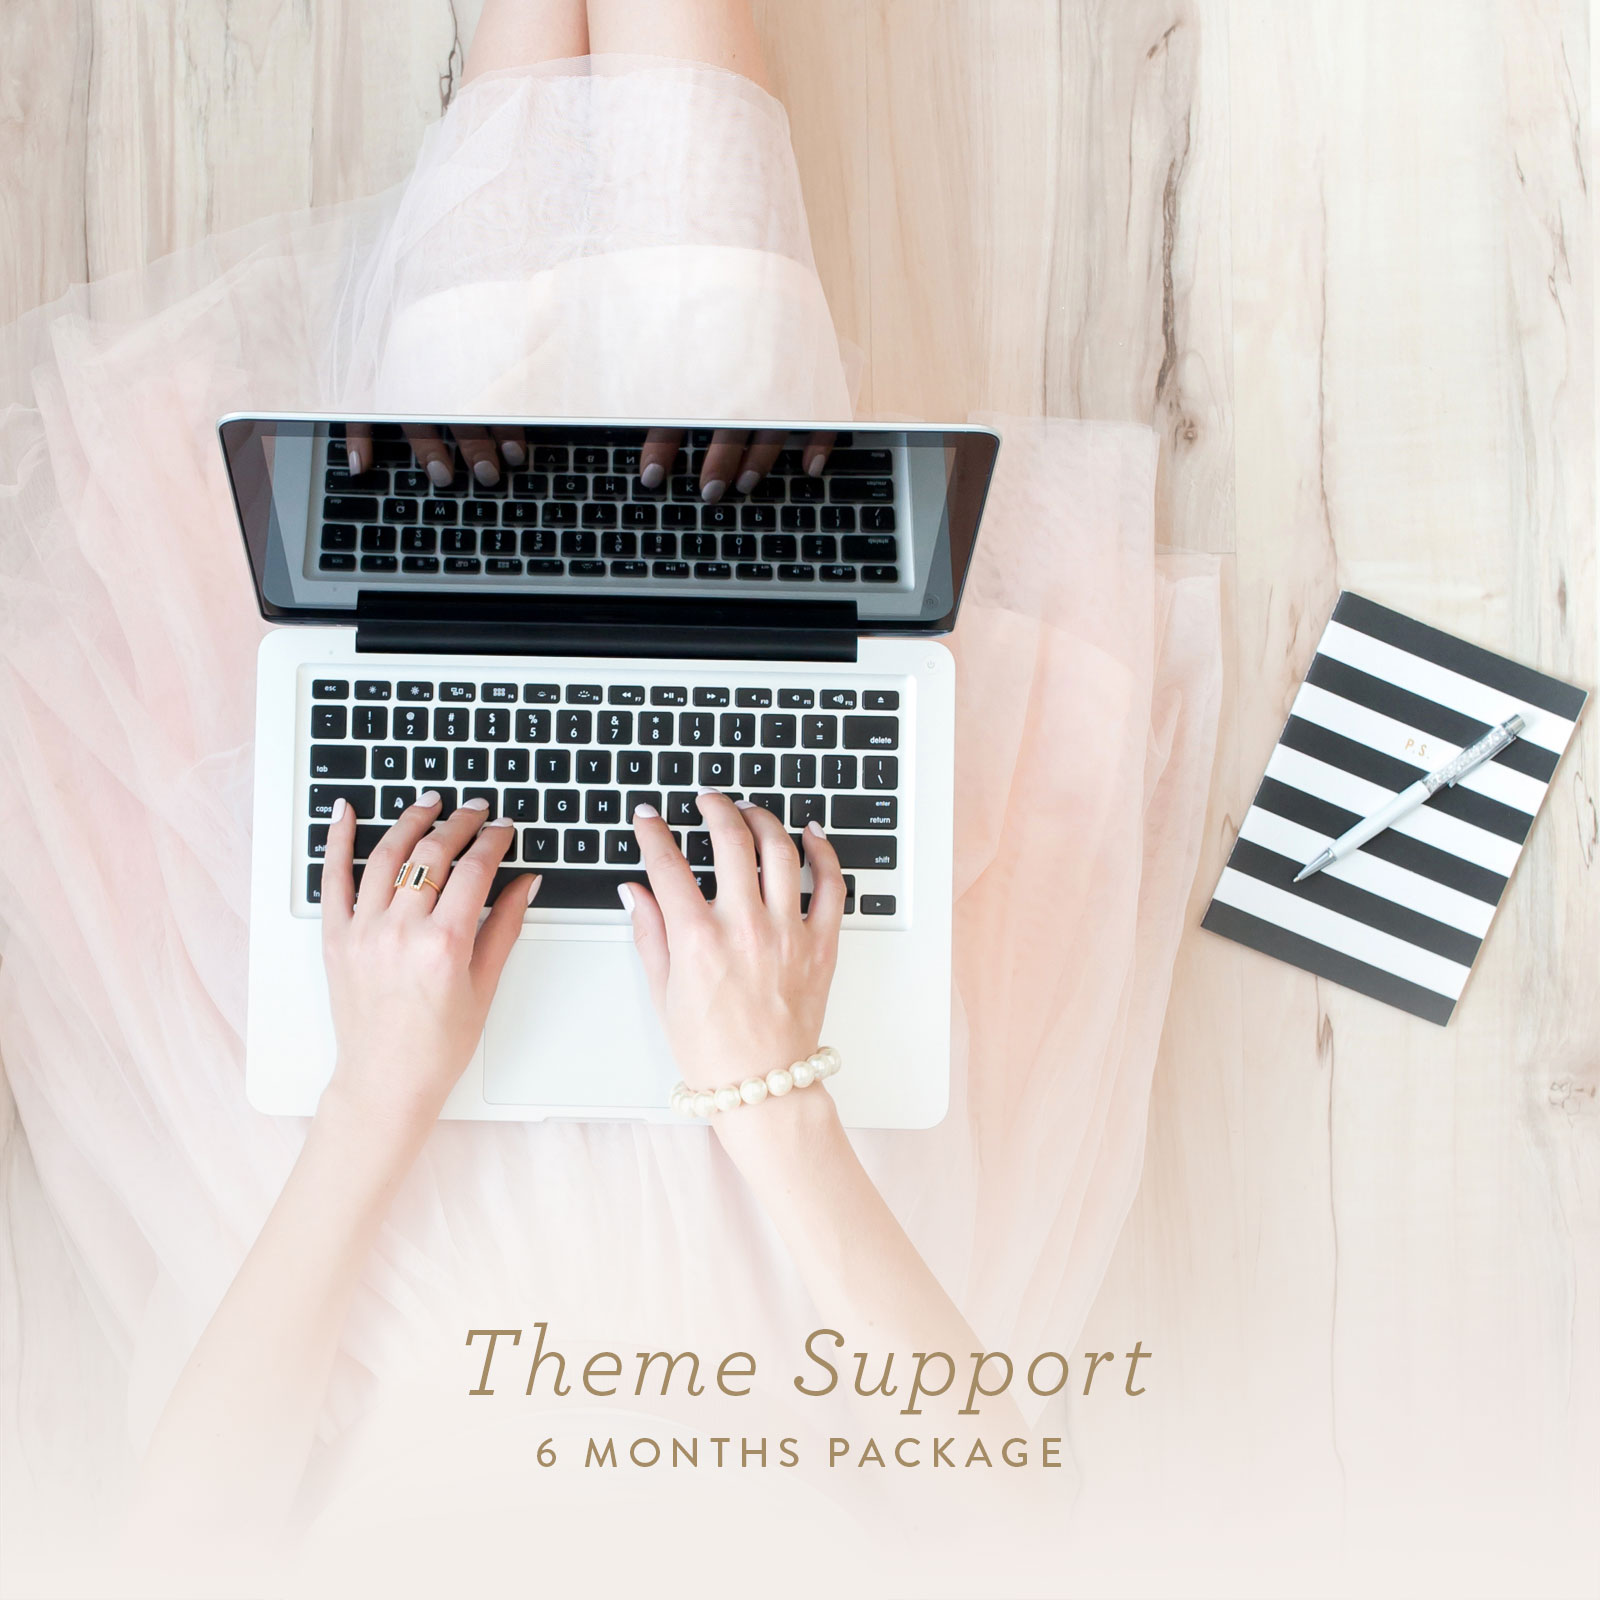 Support Package - 6 months